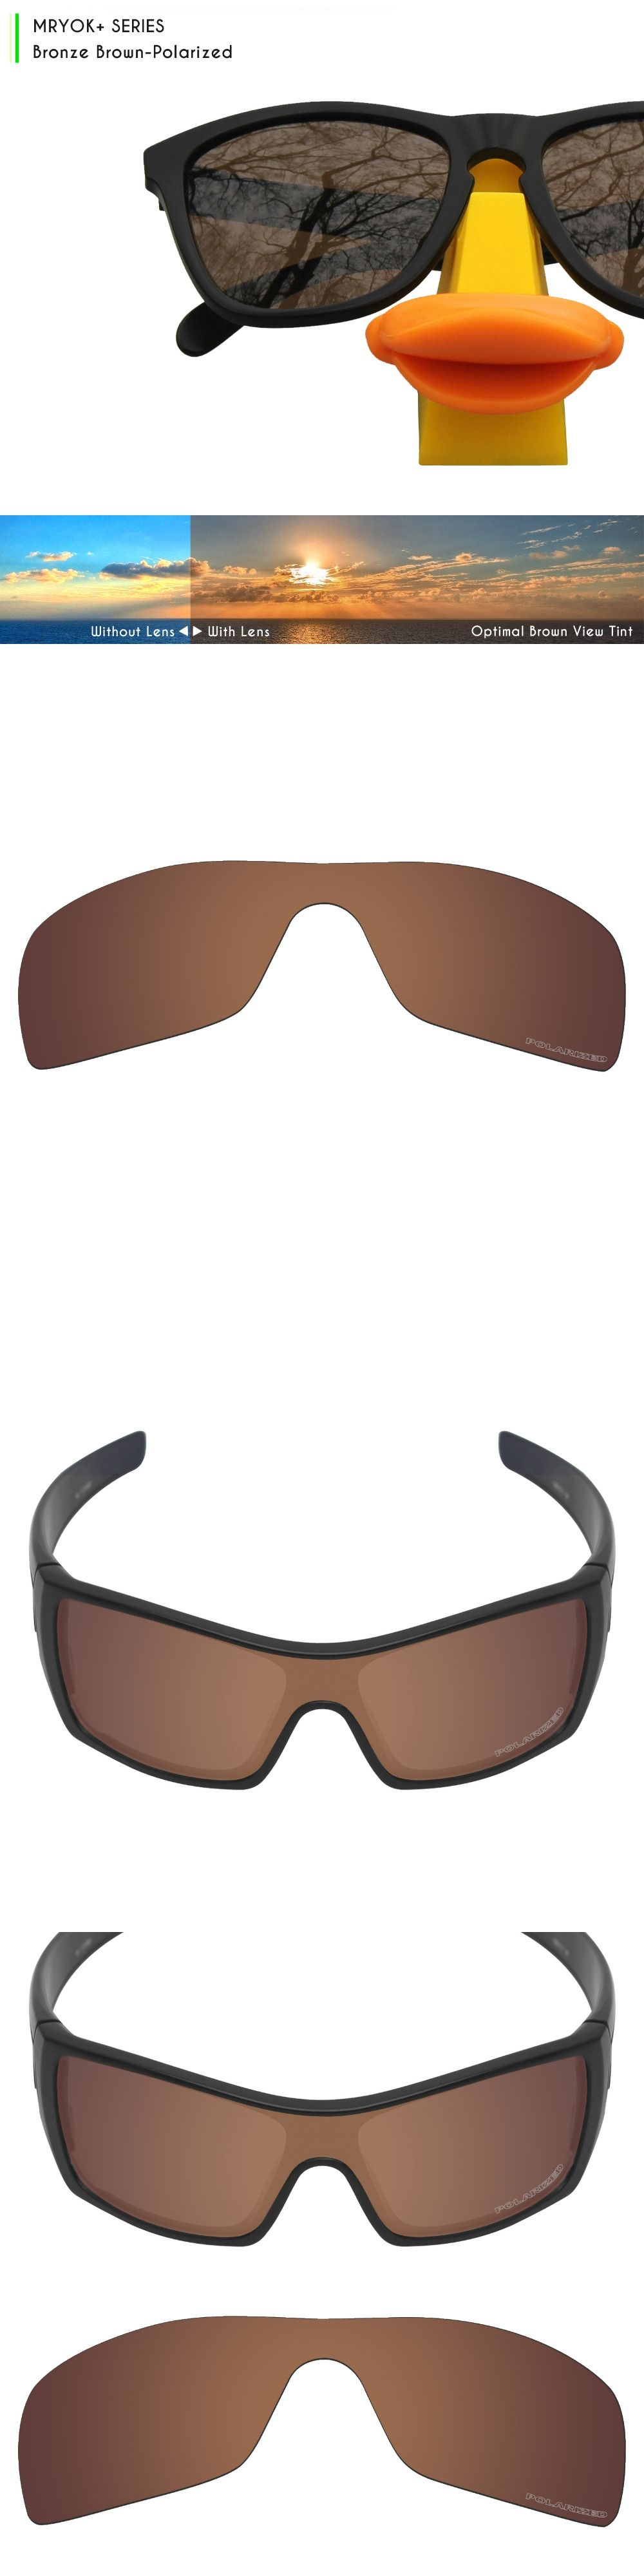 c9bccc06e5677 Mryok+ POLARIZED Resist SeaWater Replacement Lenses for Oakley Batwolf  Sunglasses Bronze Brown